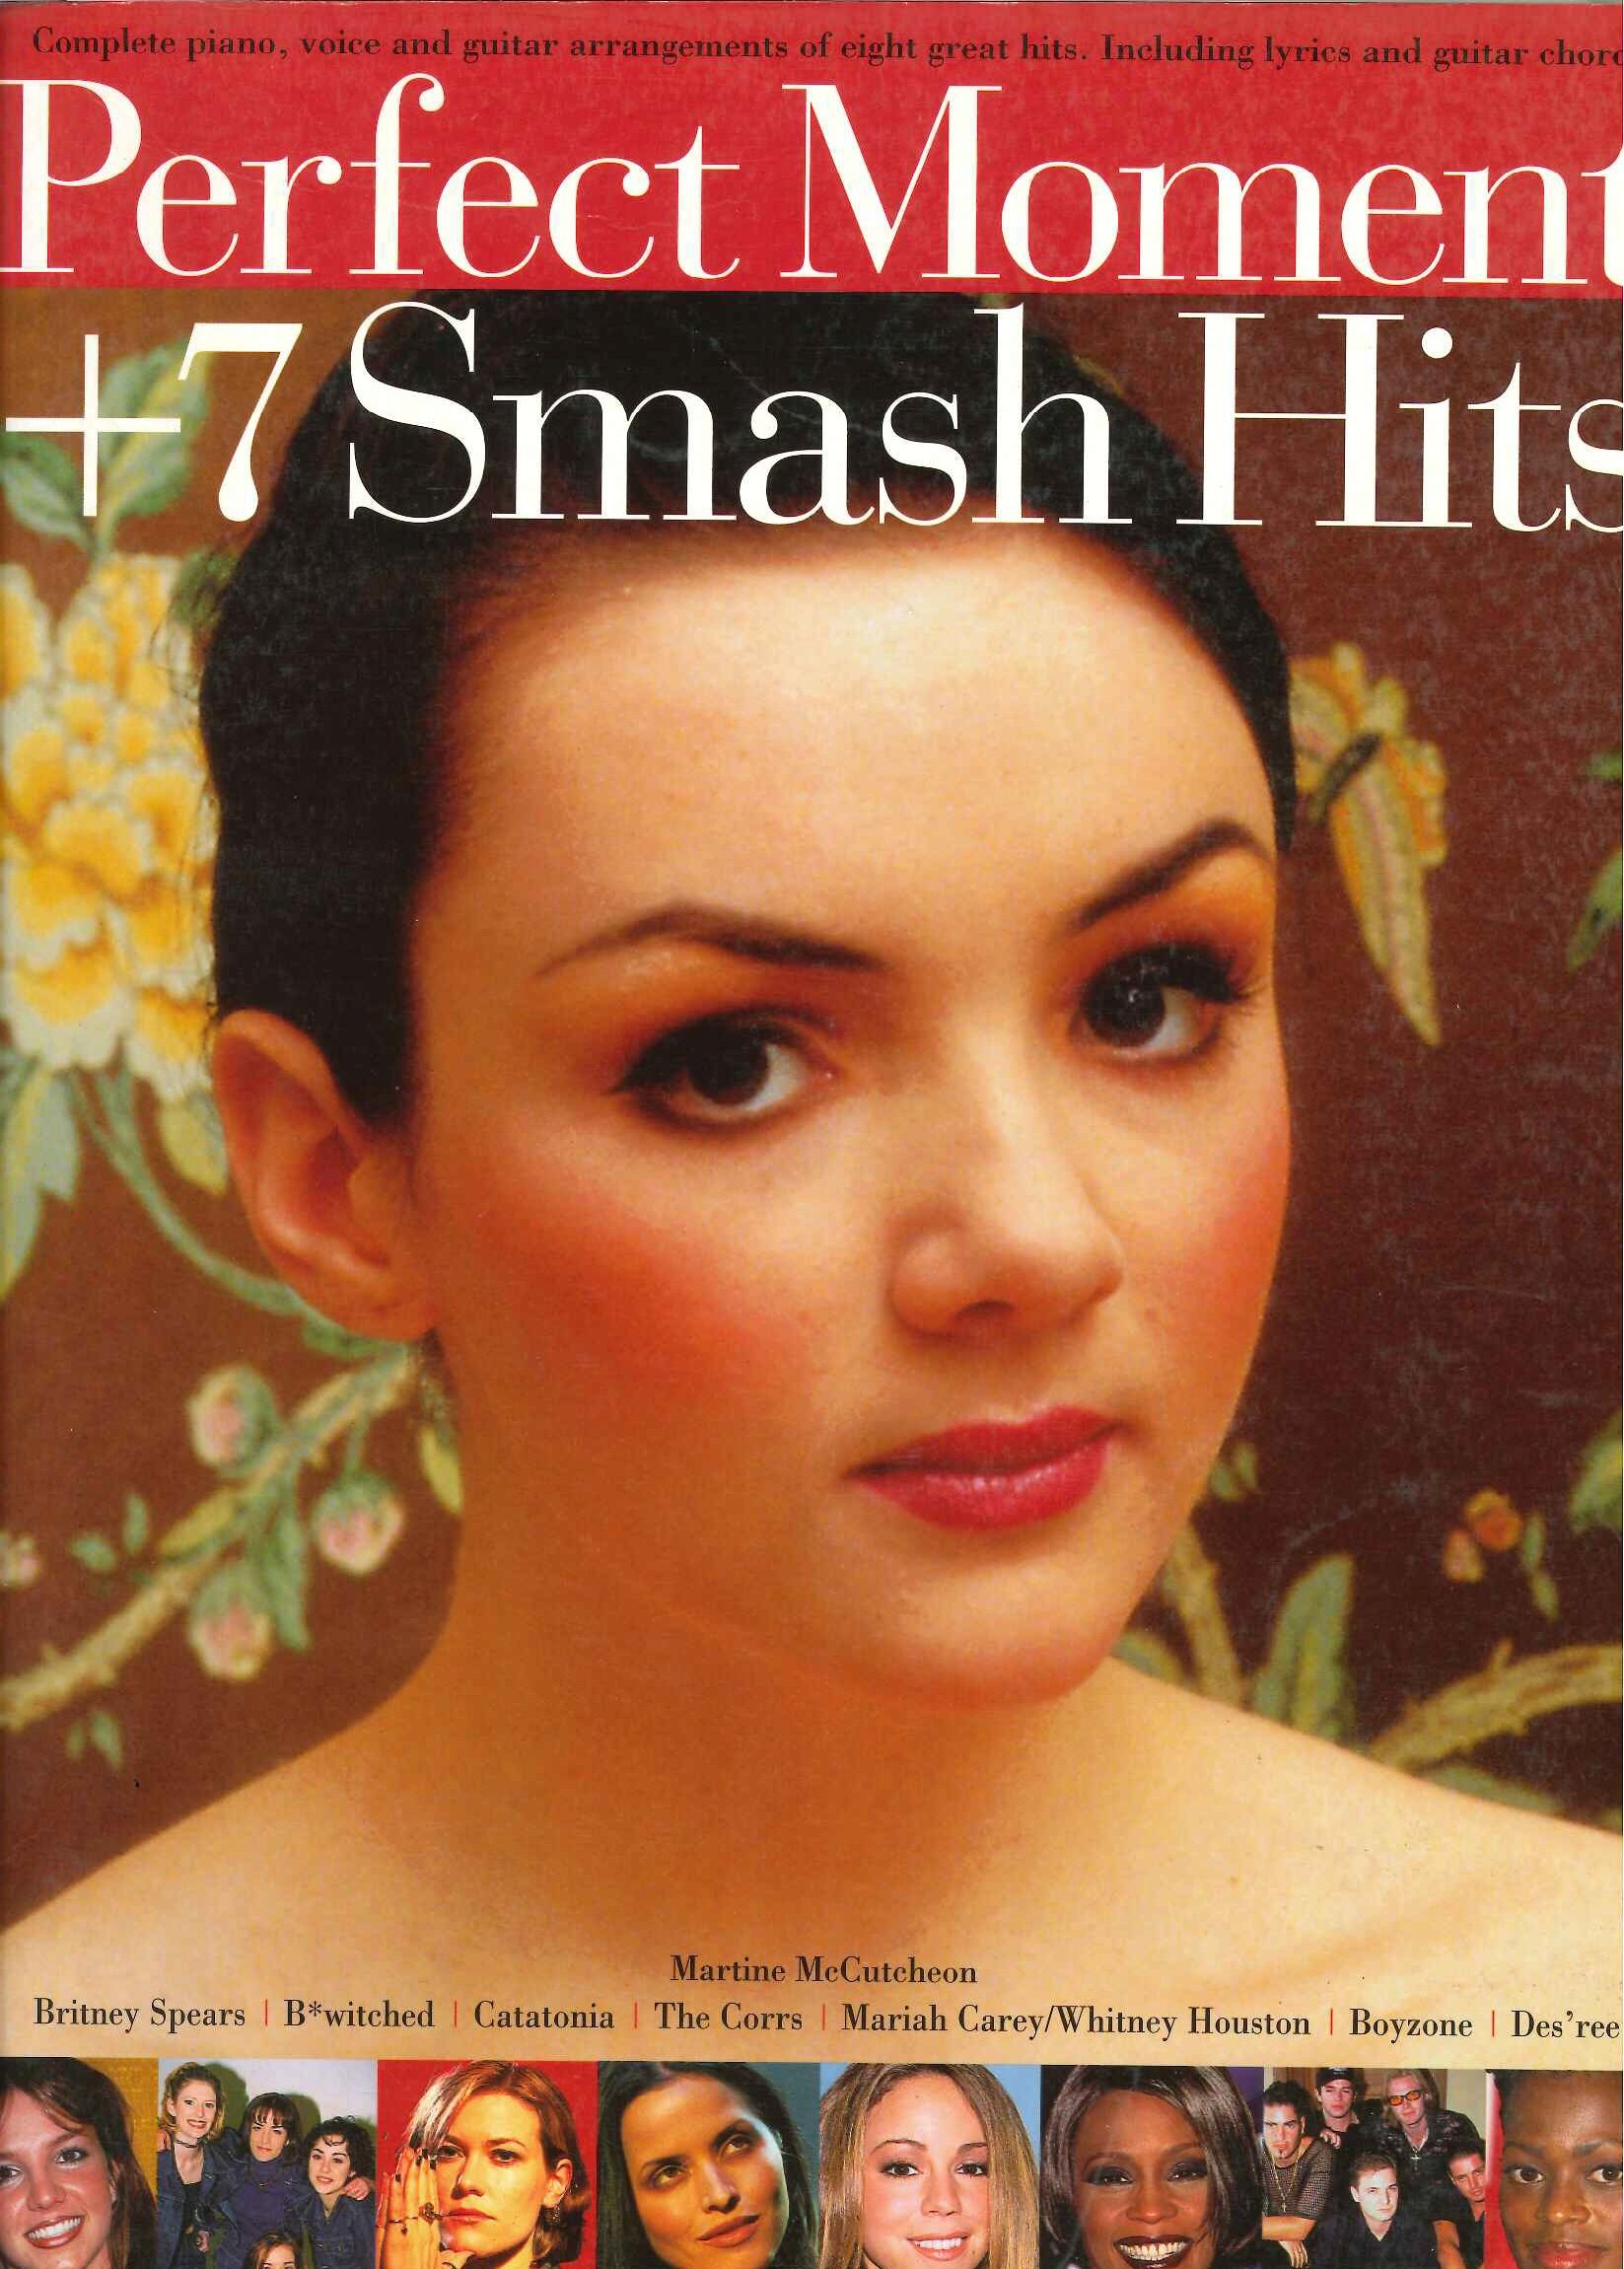 Perfect Moment 7 Smash Hits Complete Piano Voice And Guitar